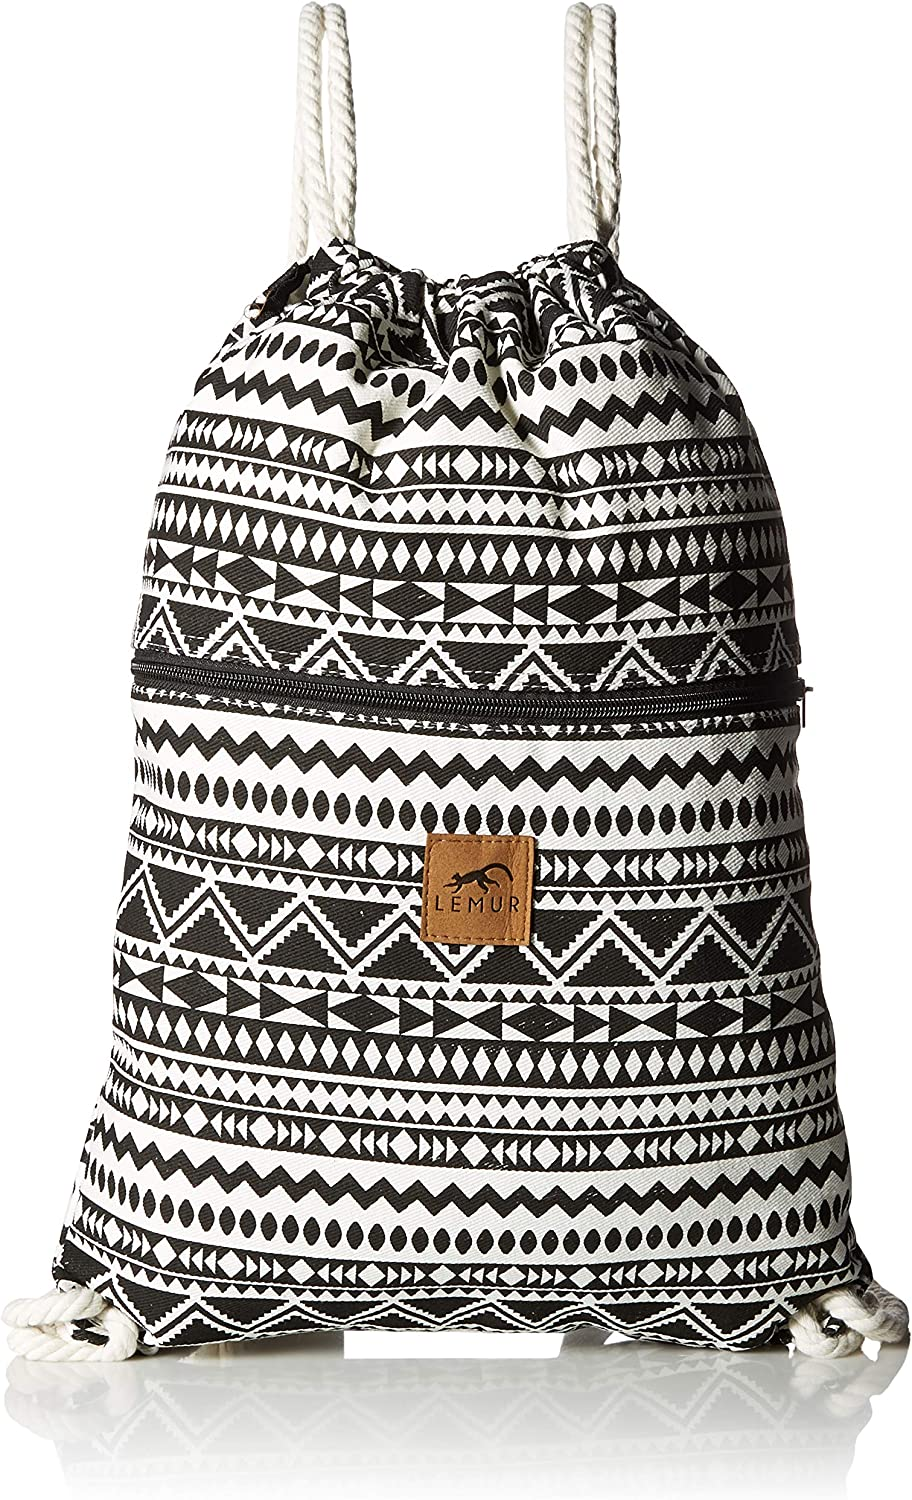 LEMUR Bags - Durable Canvas Drawstring Backpack with Secure Zippered Pocket (Aztec Tribal)